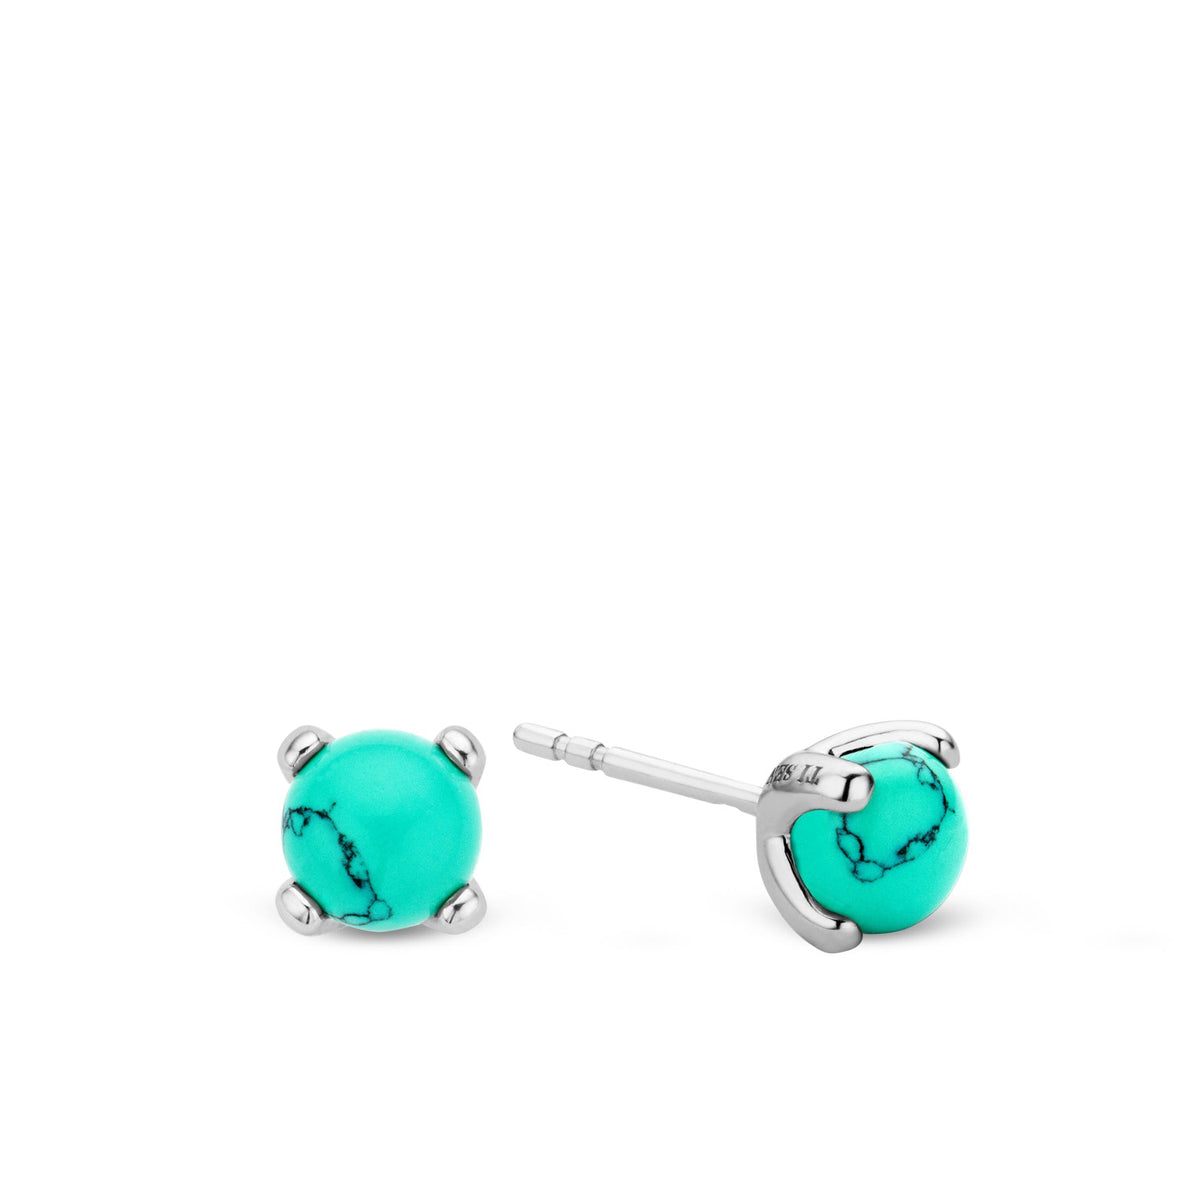 TI SENTO Sterling Silver Turquoise Colored Stud Earrings